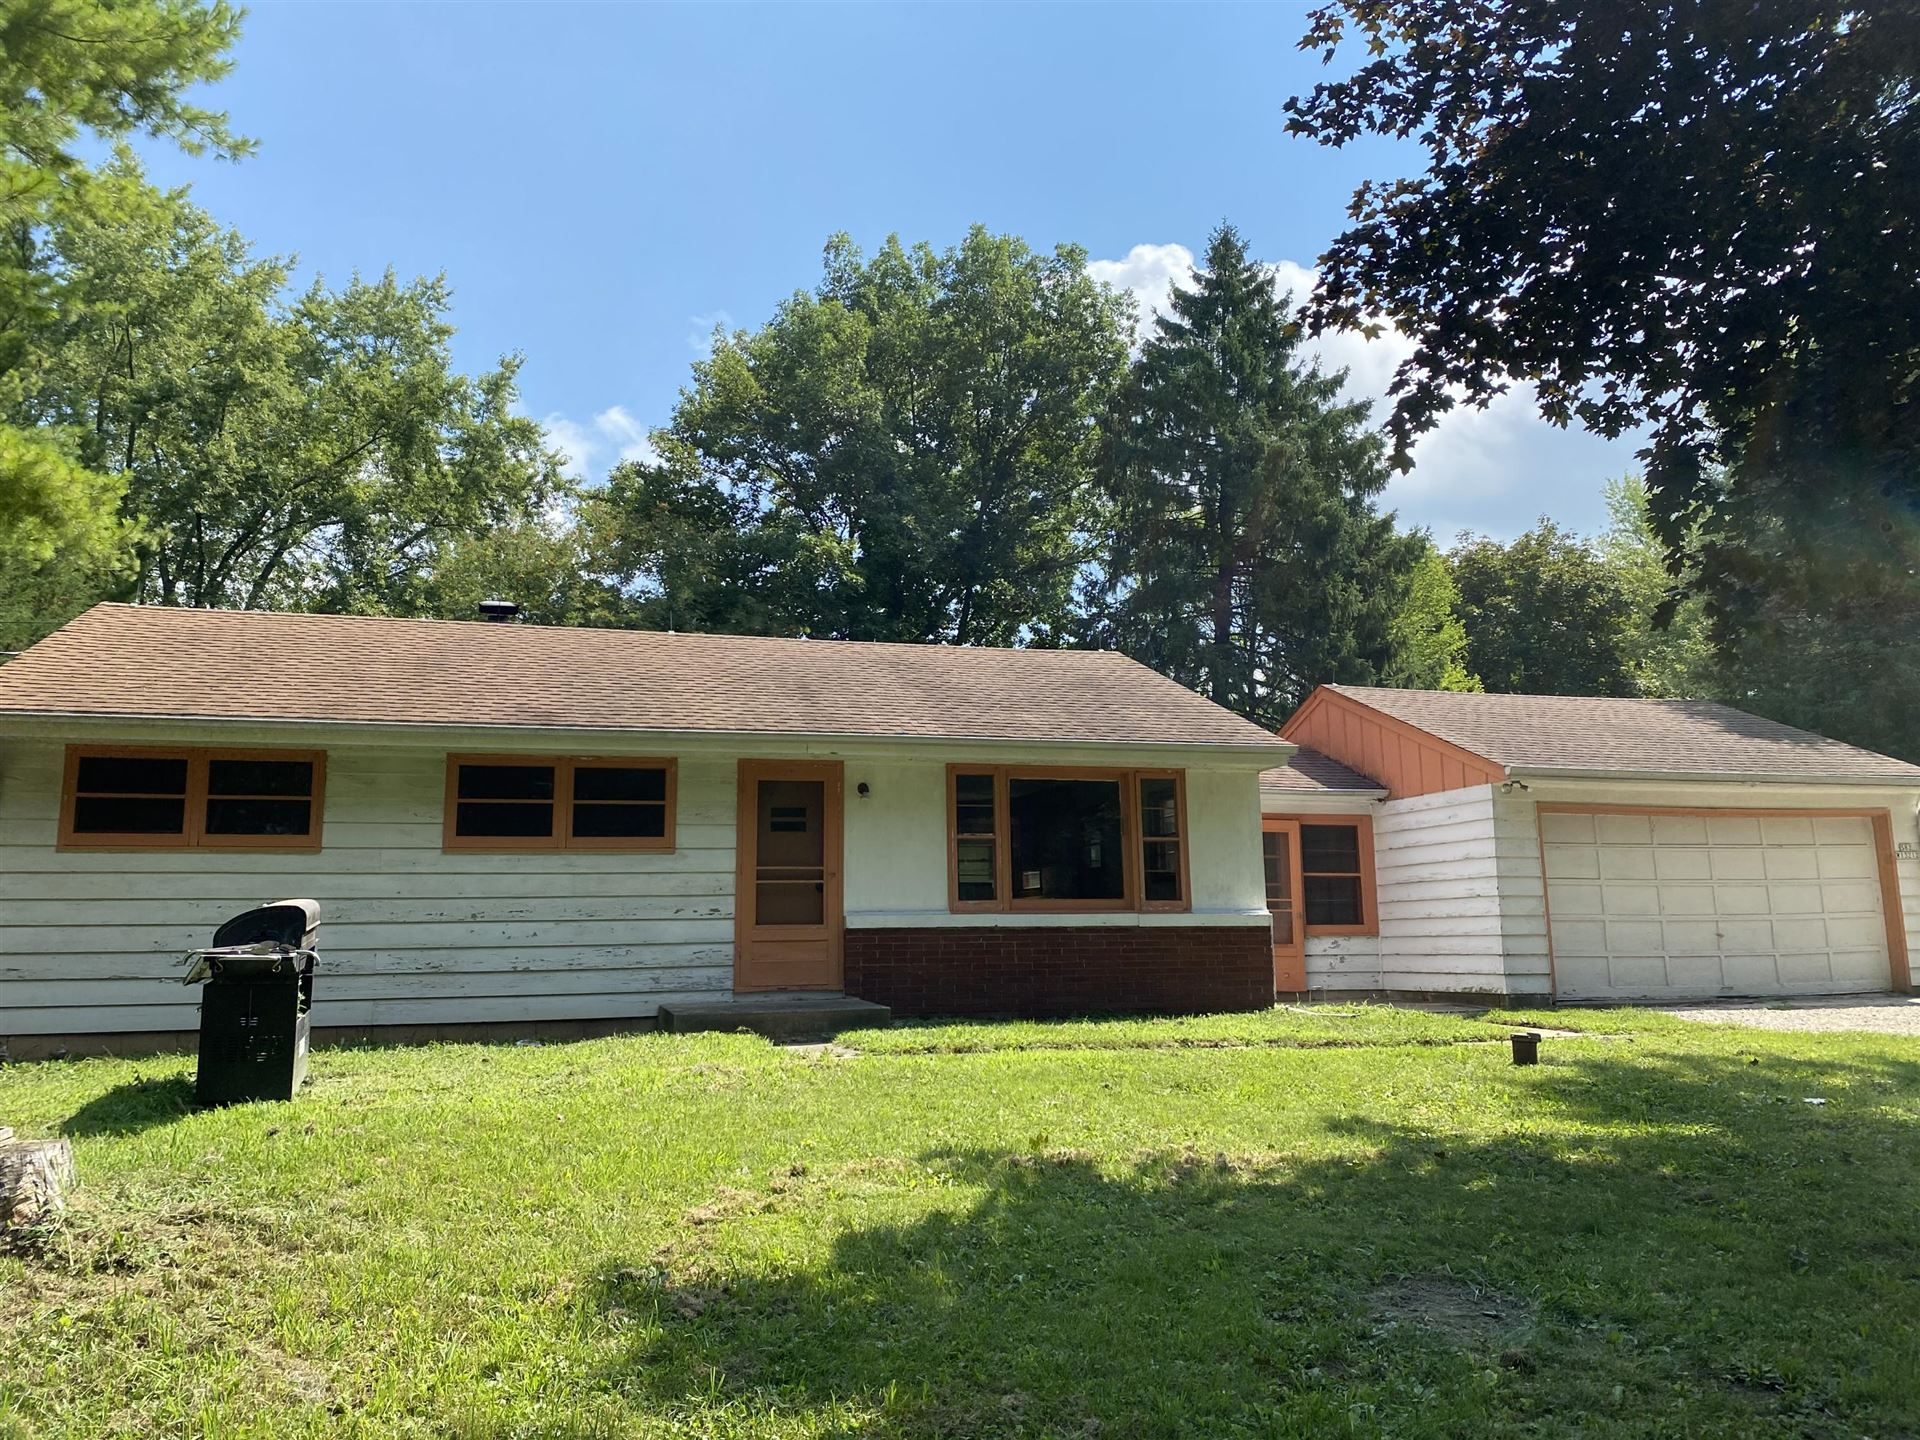 S82W13212 Acker Dr, Muskego, WI 53150 - #: 1703471